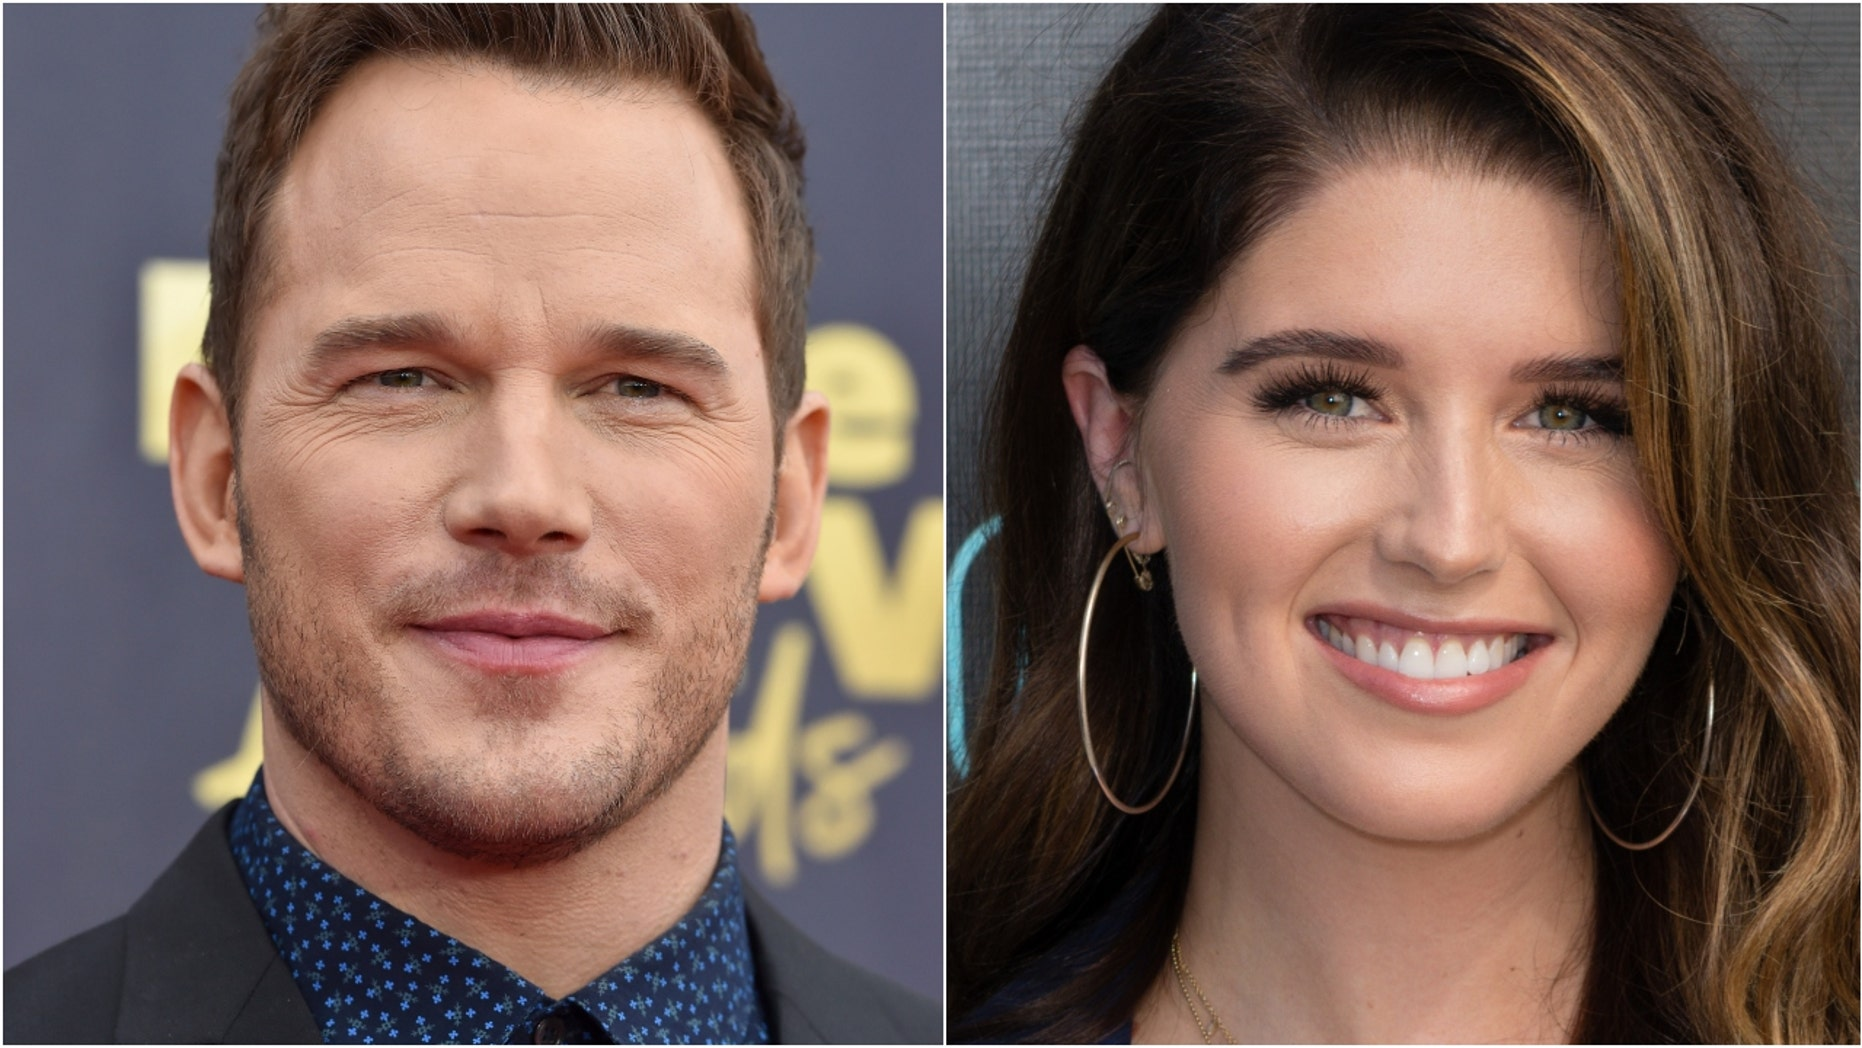 Chris Pratt engaged to Katherine Schwarzenegger after seven month romance